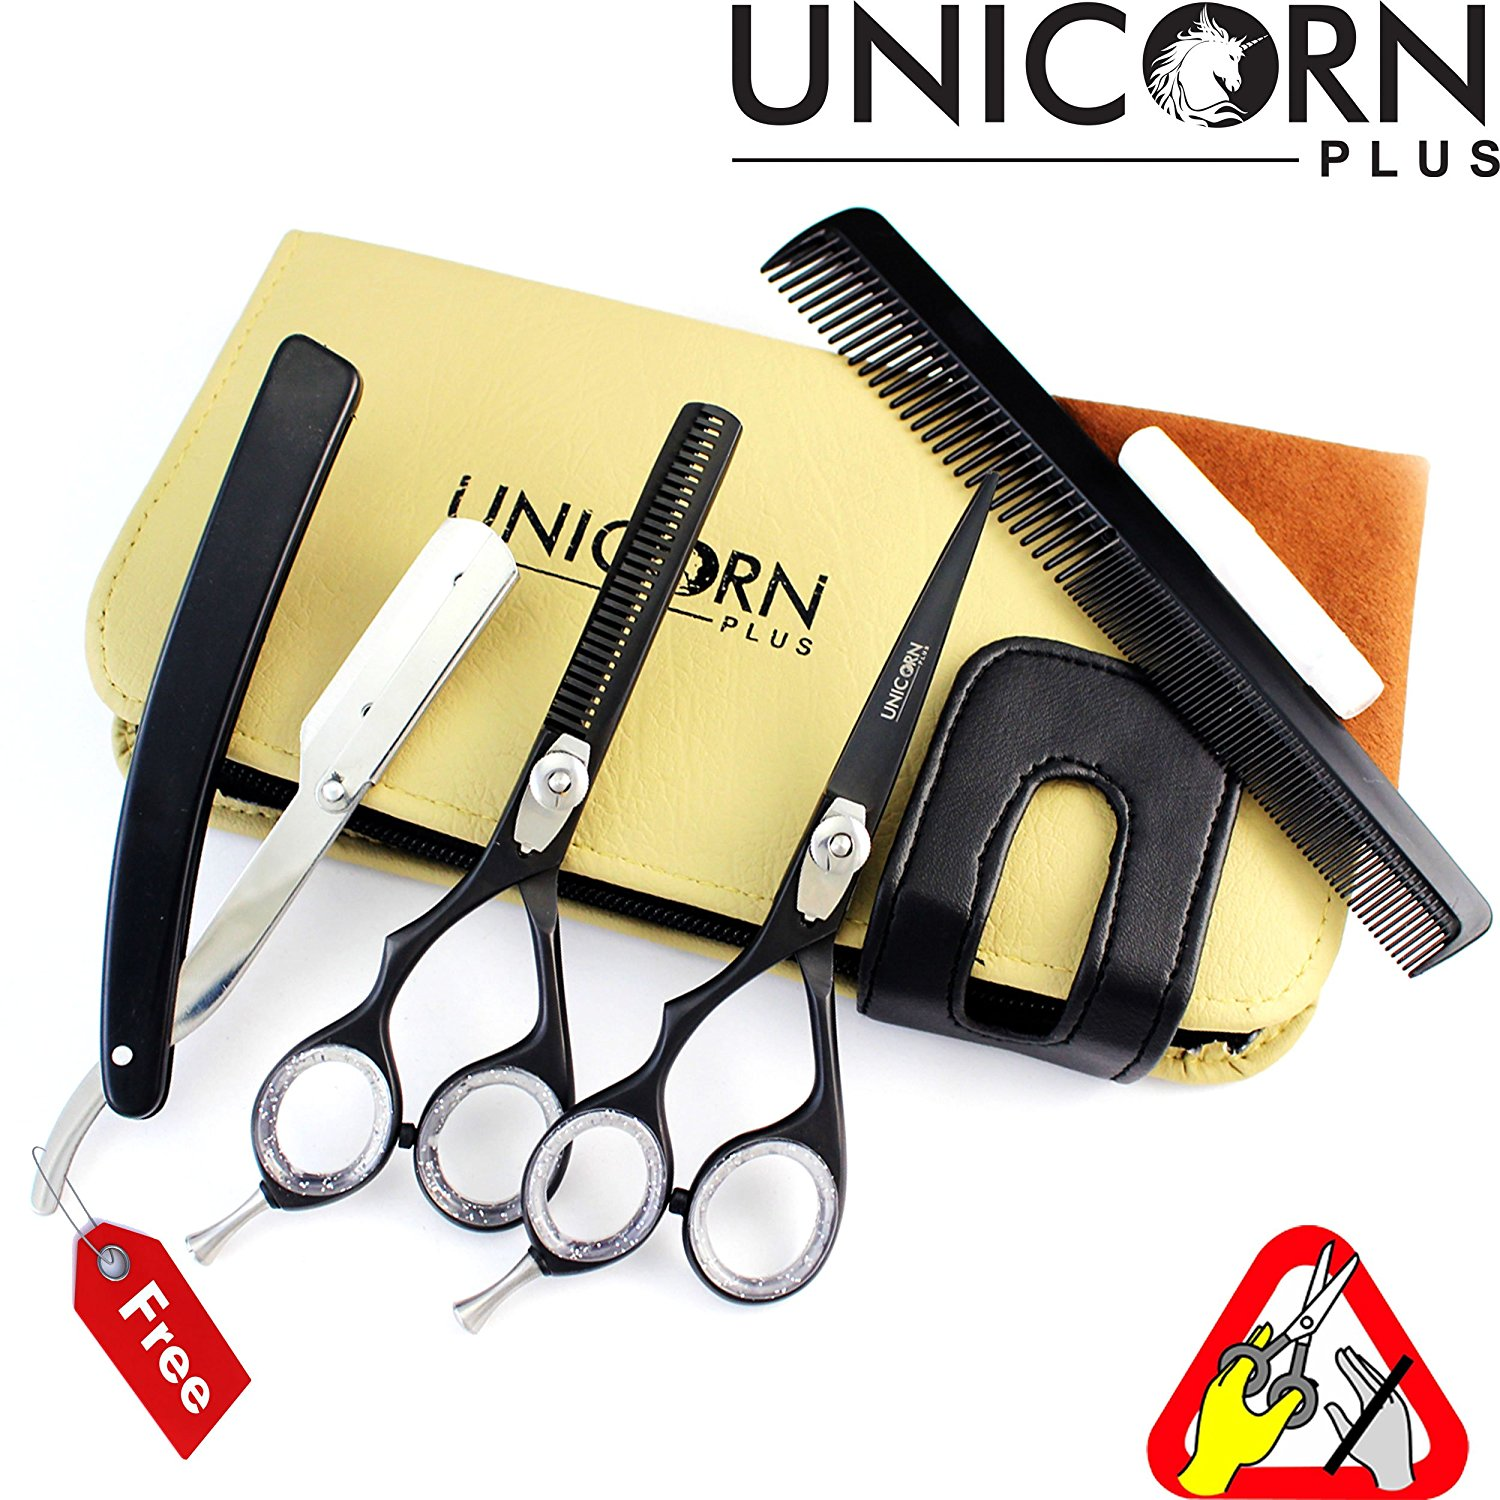 "HOT OFFER !! Professional Left Handed Hair Cutting Scissors Set 5.5""- Razor Edge Series - Japanese Steel Scissors (J2) Barber Shears,salon Scissors +Hair Thinning Scissors + FREE Men's Shaving Razor"